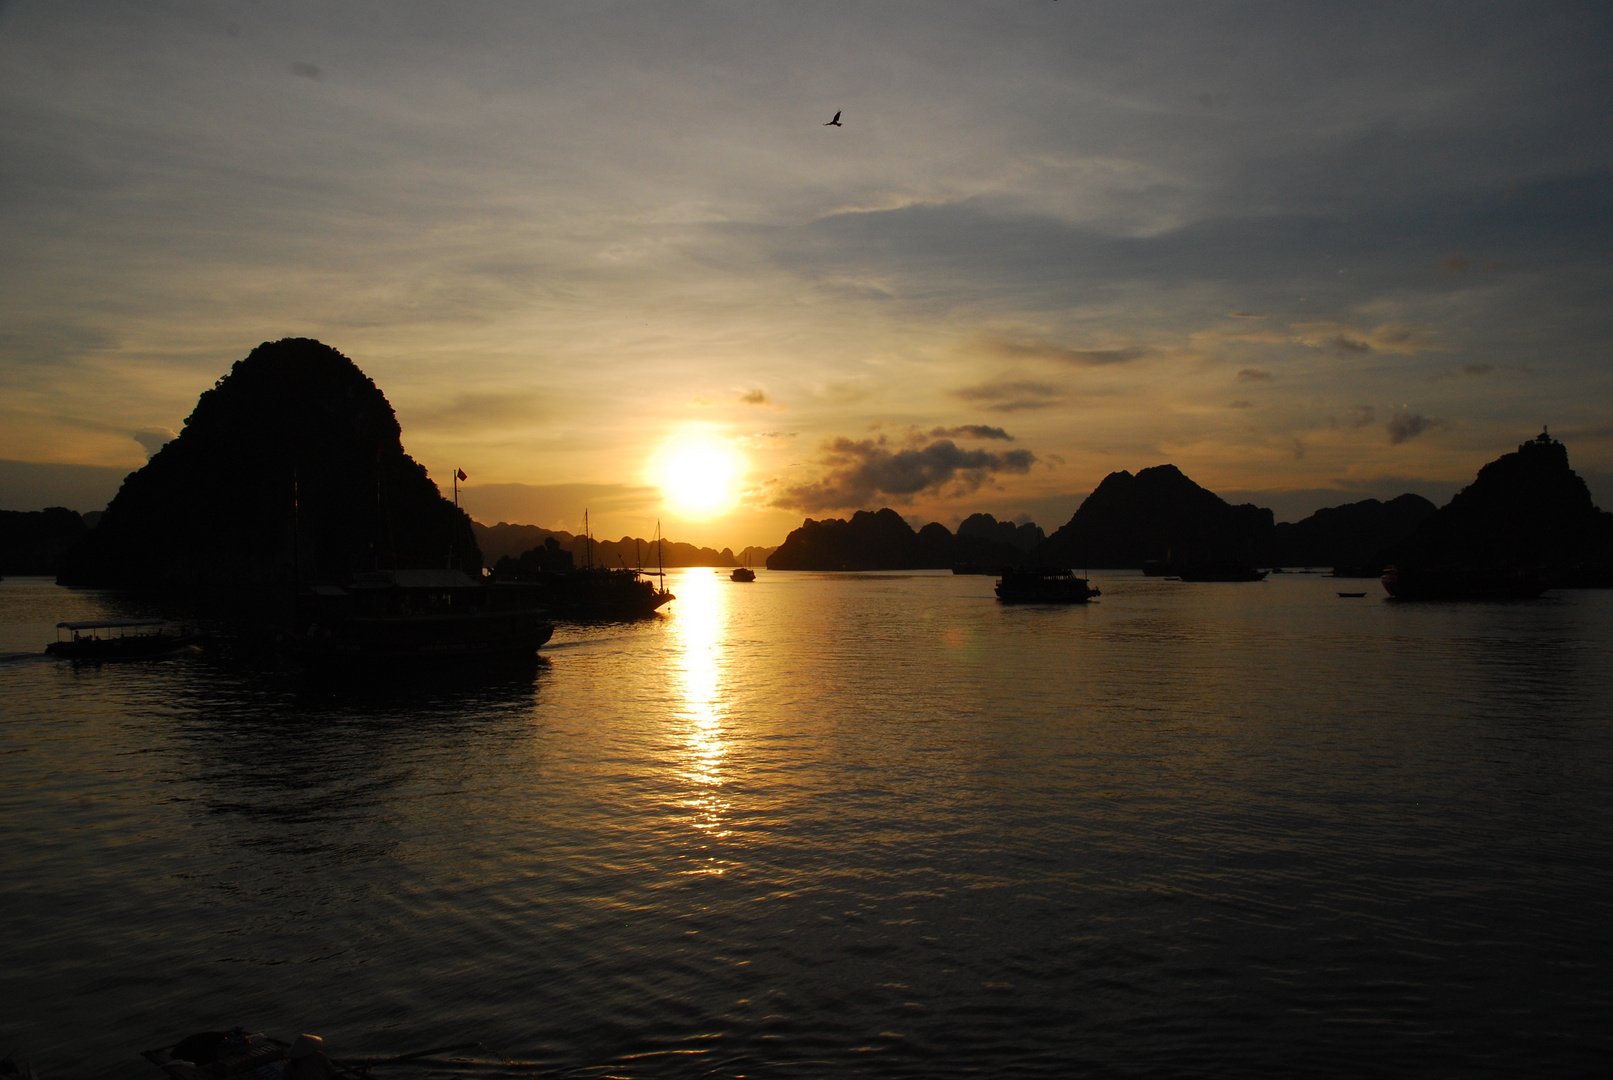 Sunset in HaLong